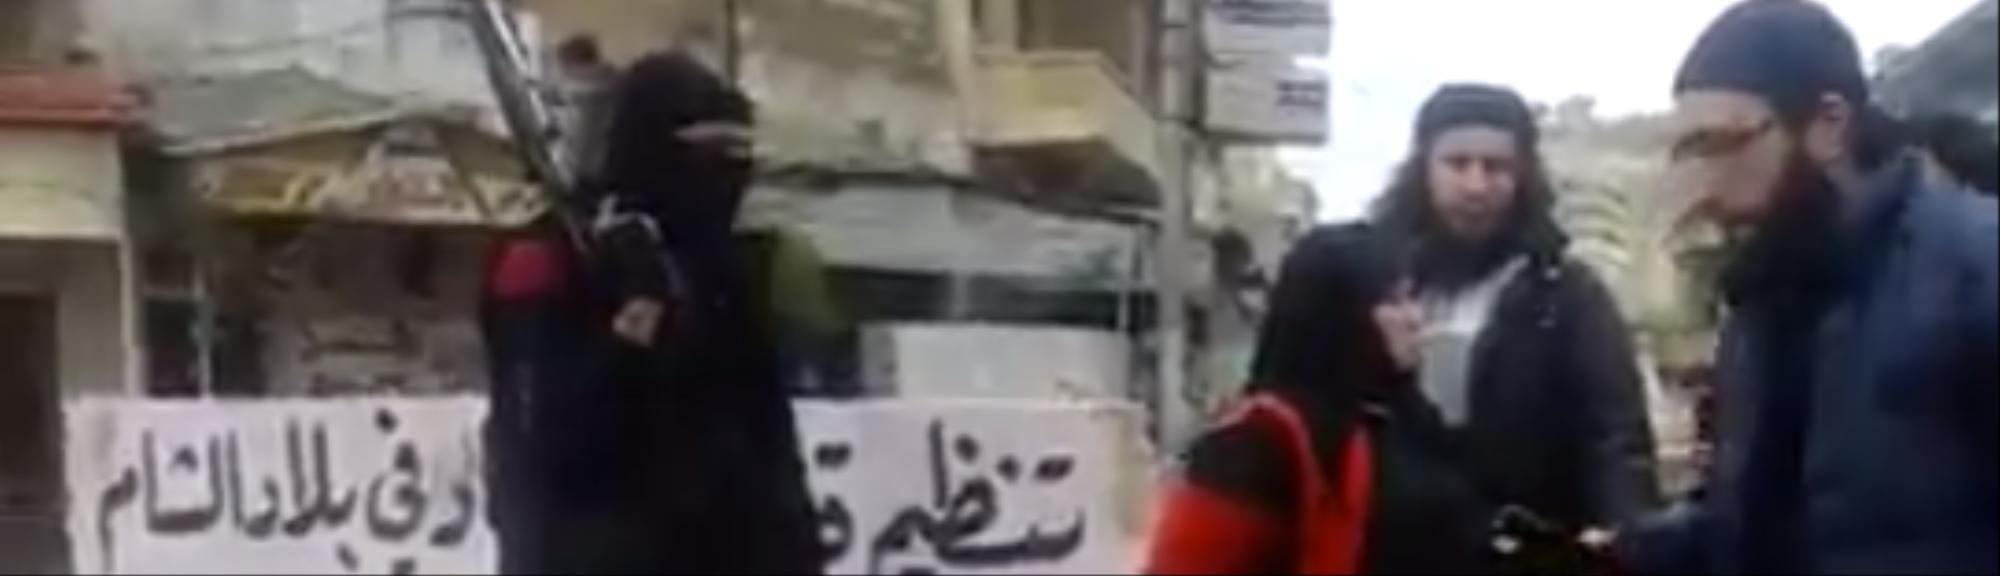 Syrian Militants Publicly Execute a Woman Accused of Committing Adultery